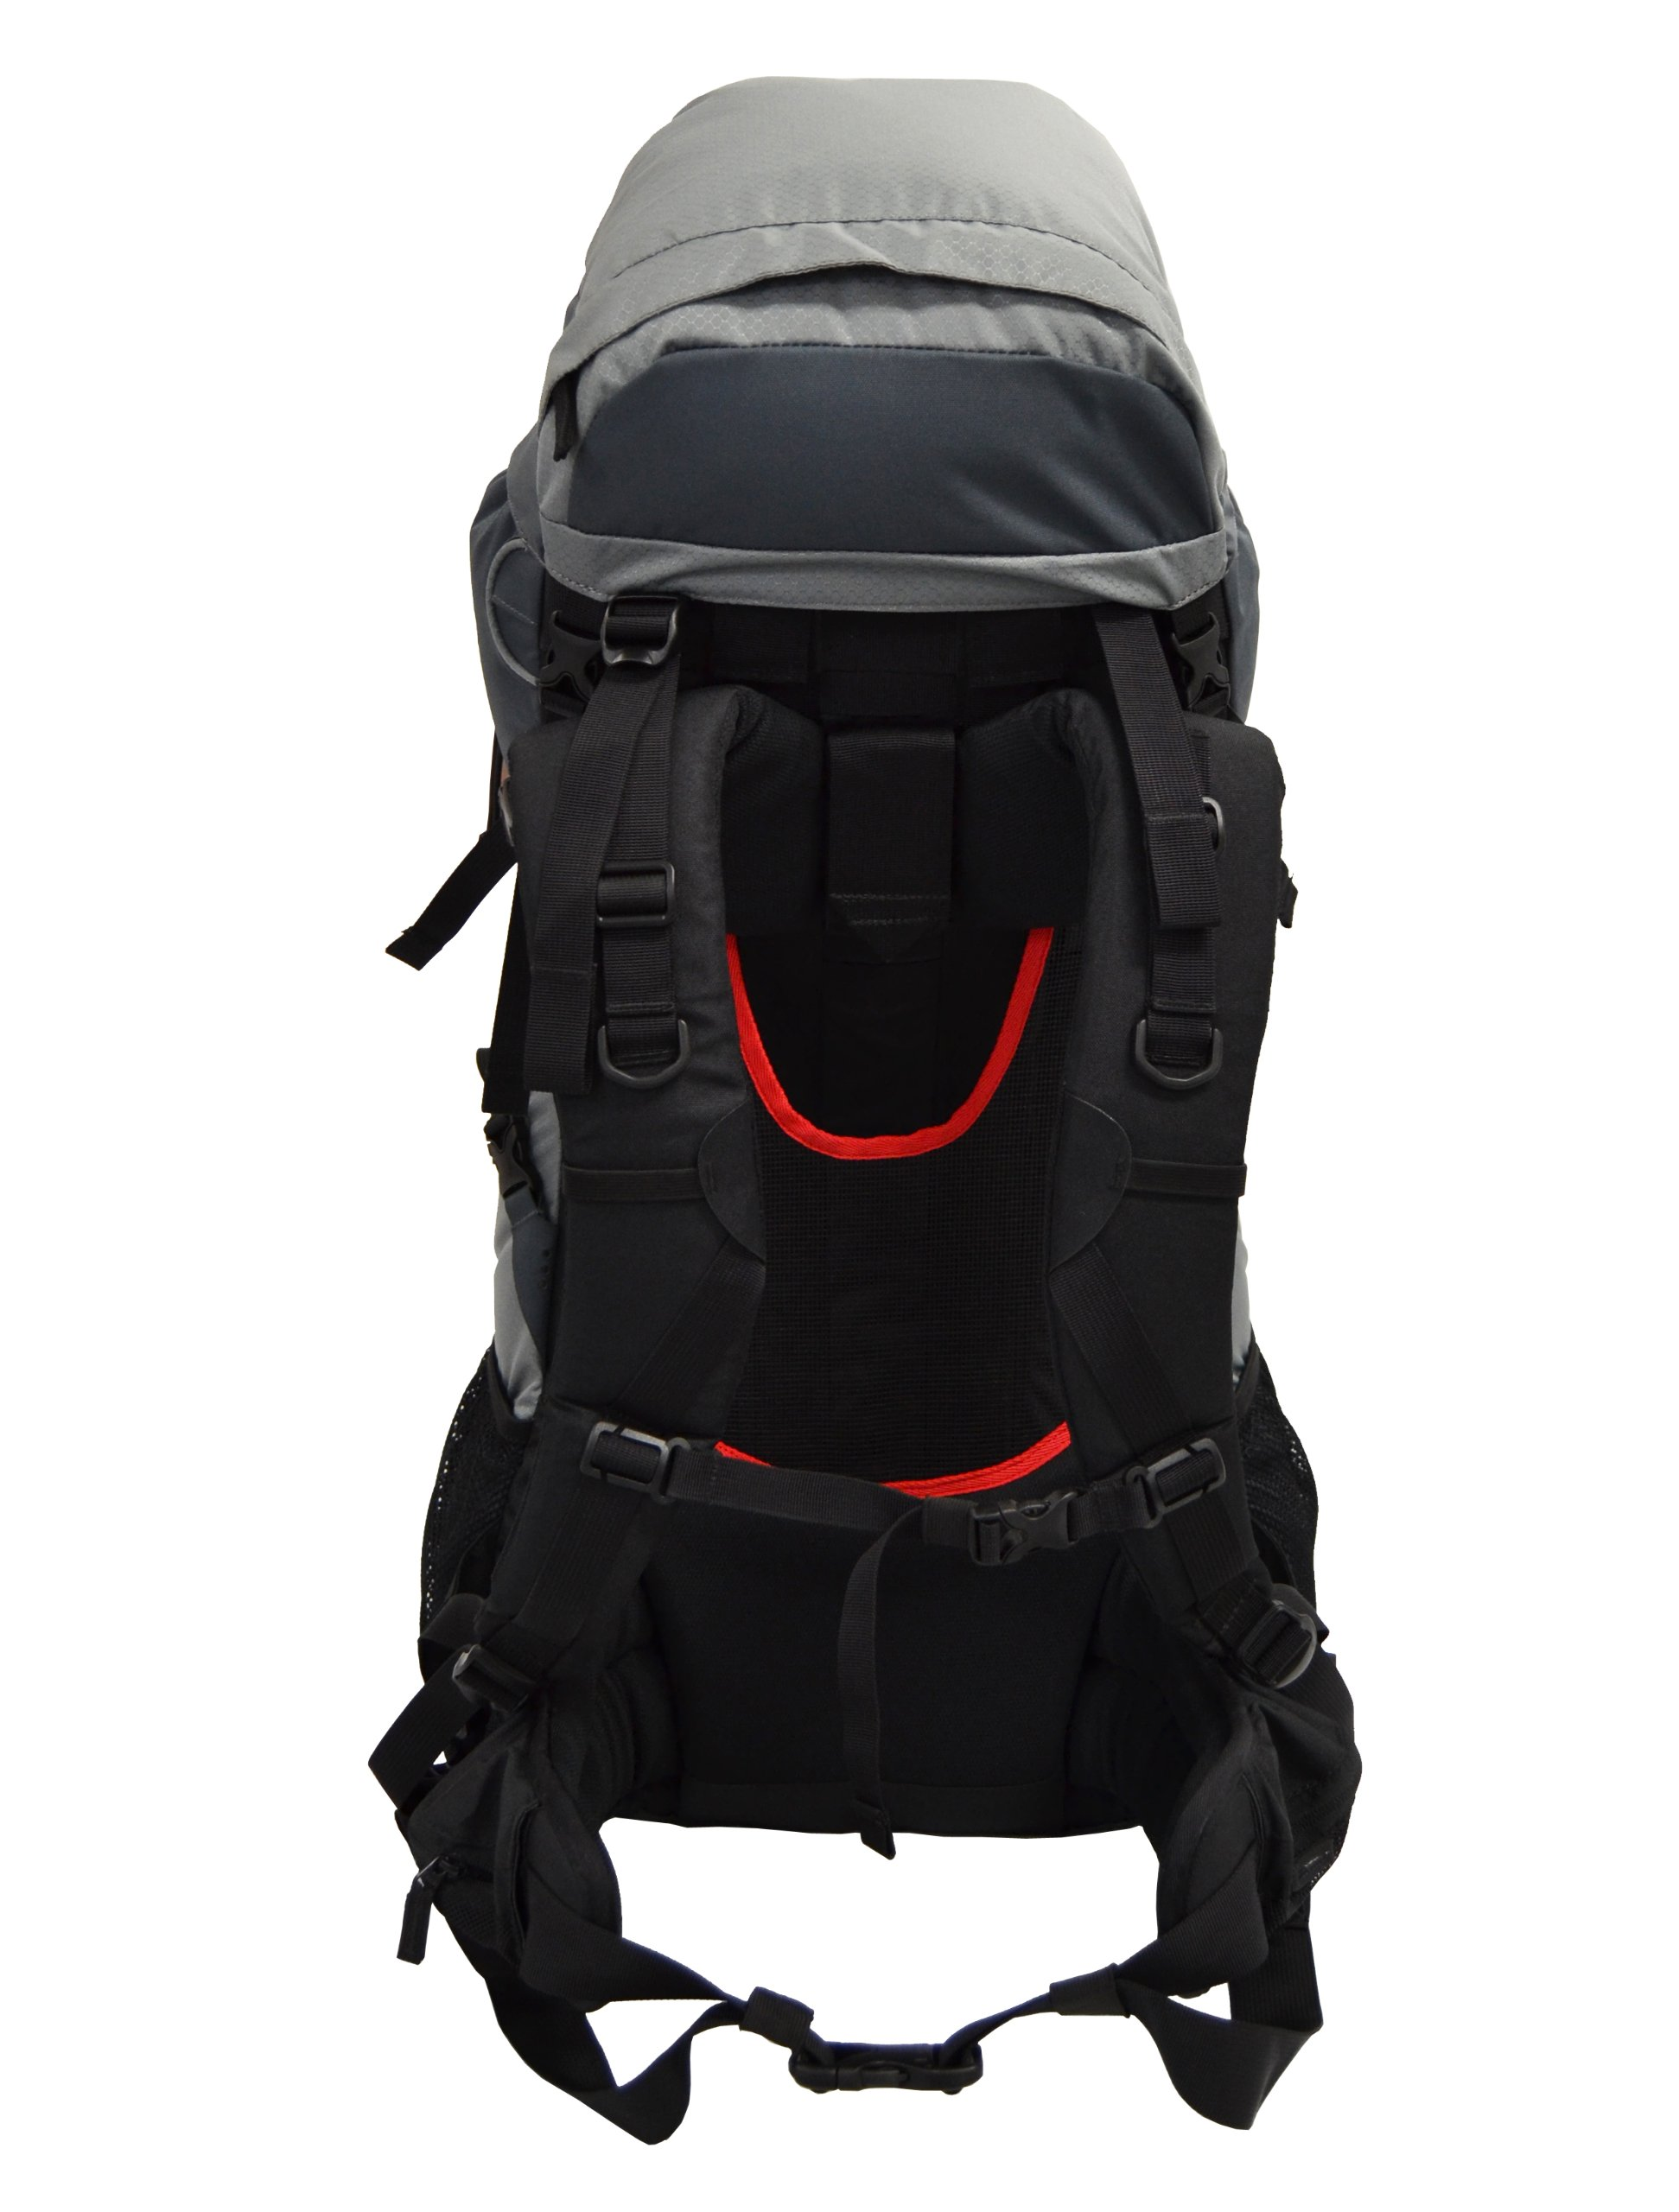 Guerrilla Packs Roundhouse Internal Frame Backpack, Middle Grey/Dark Grey by Guerrilla Packs (Image #4)